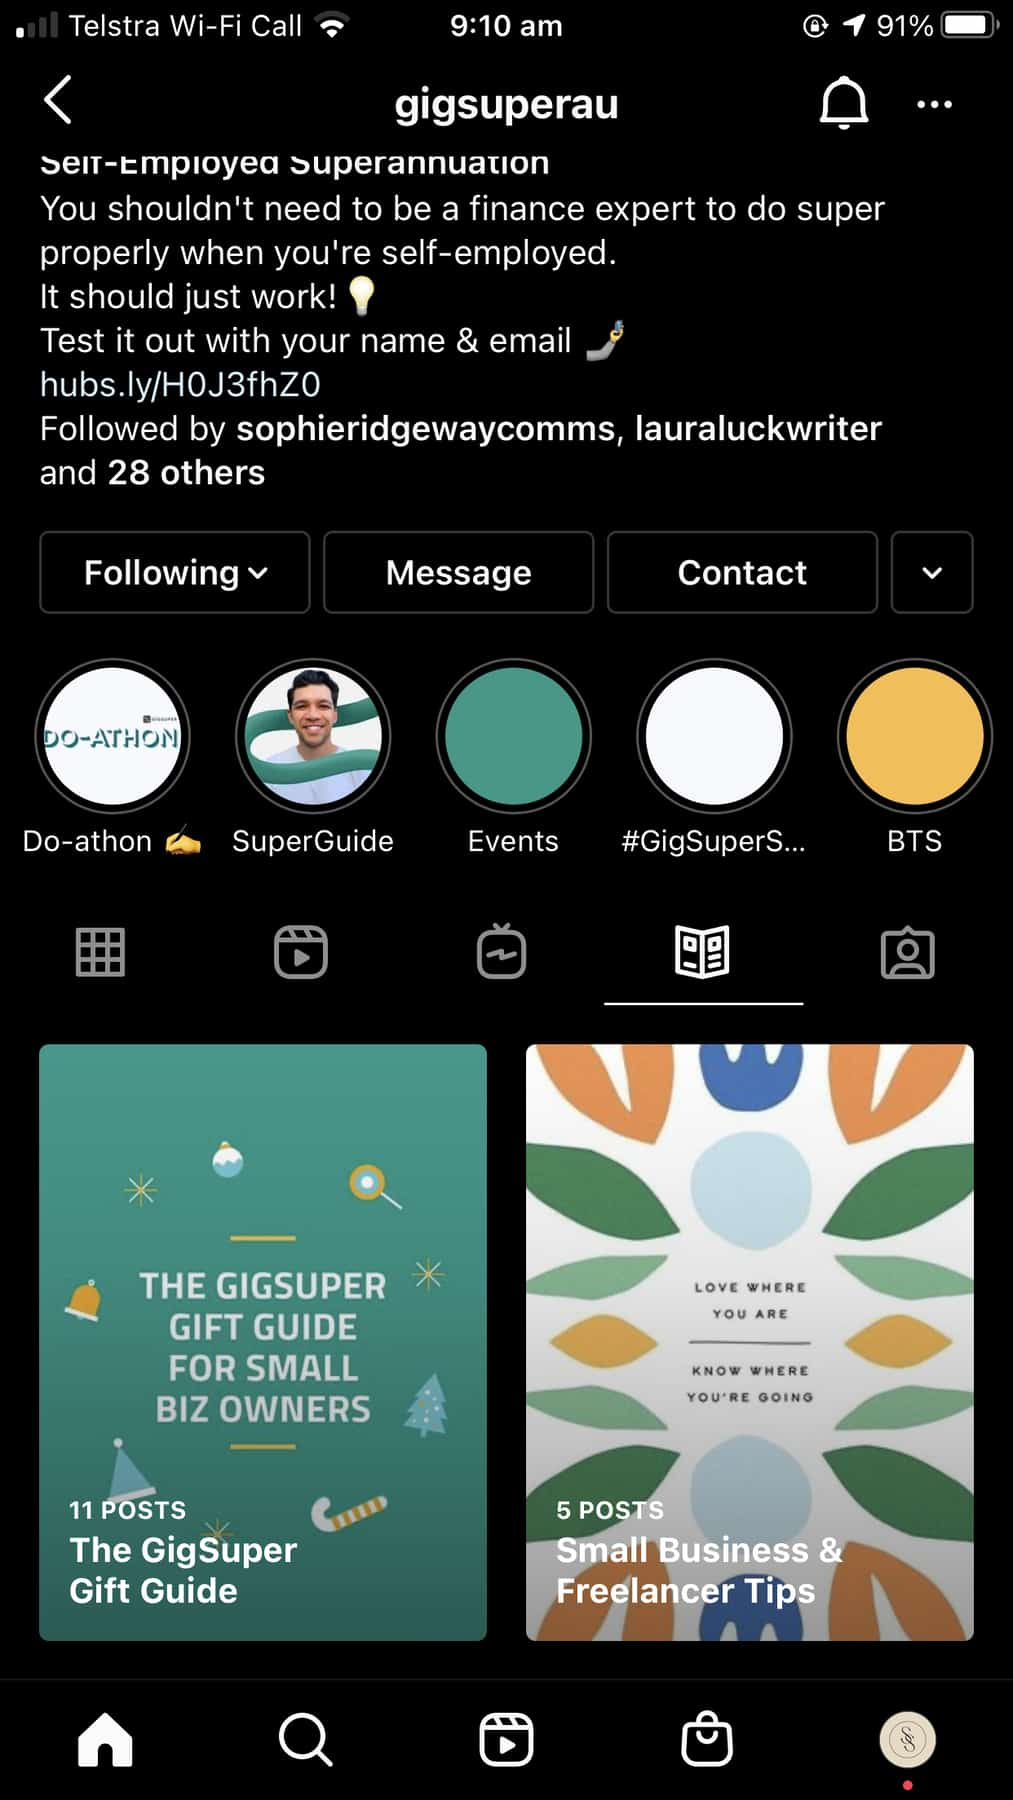 Gig Super's Instagram showig guides to gifts for small biz owners and tips for small business and freelancers